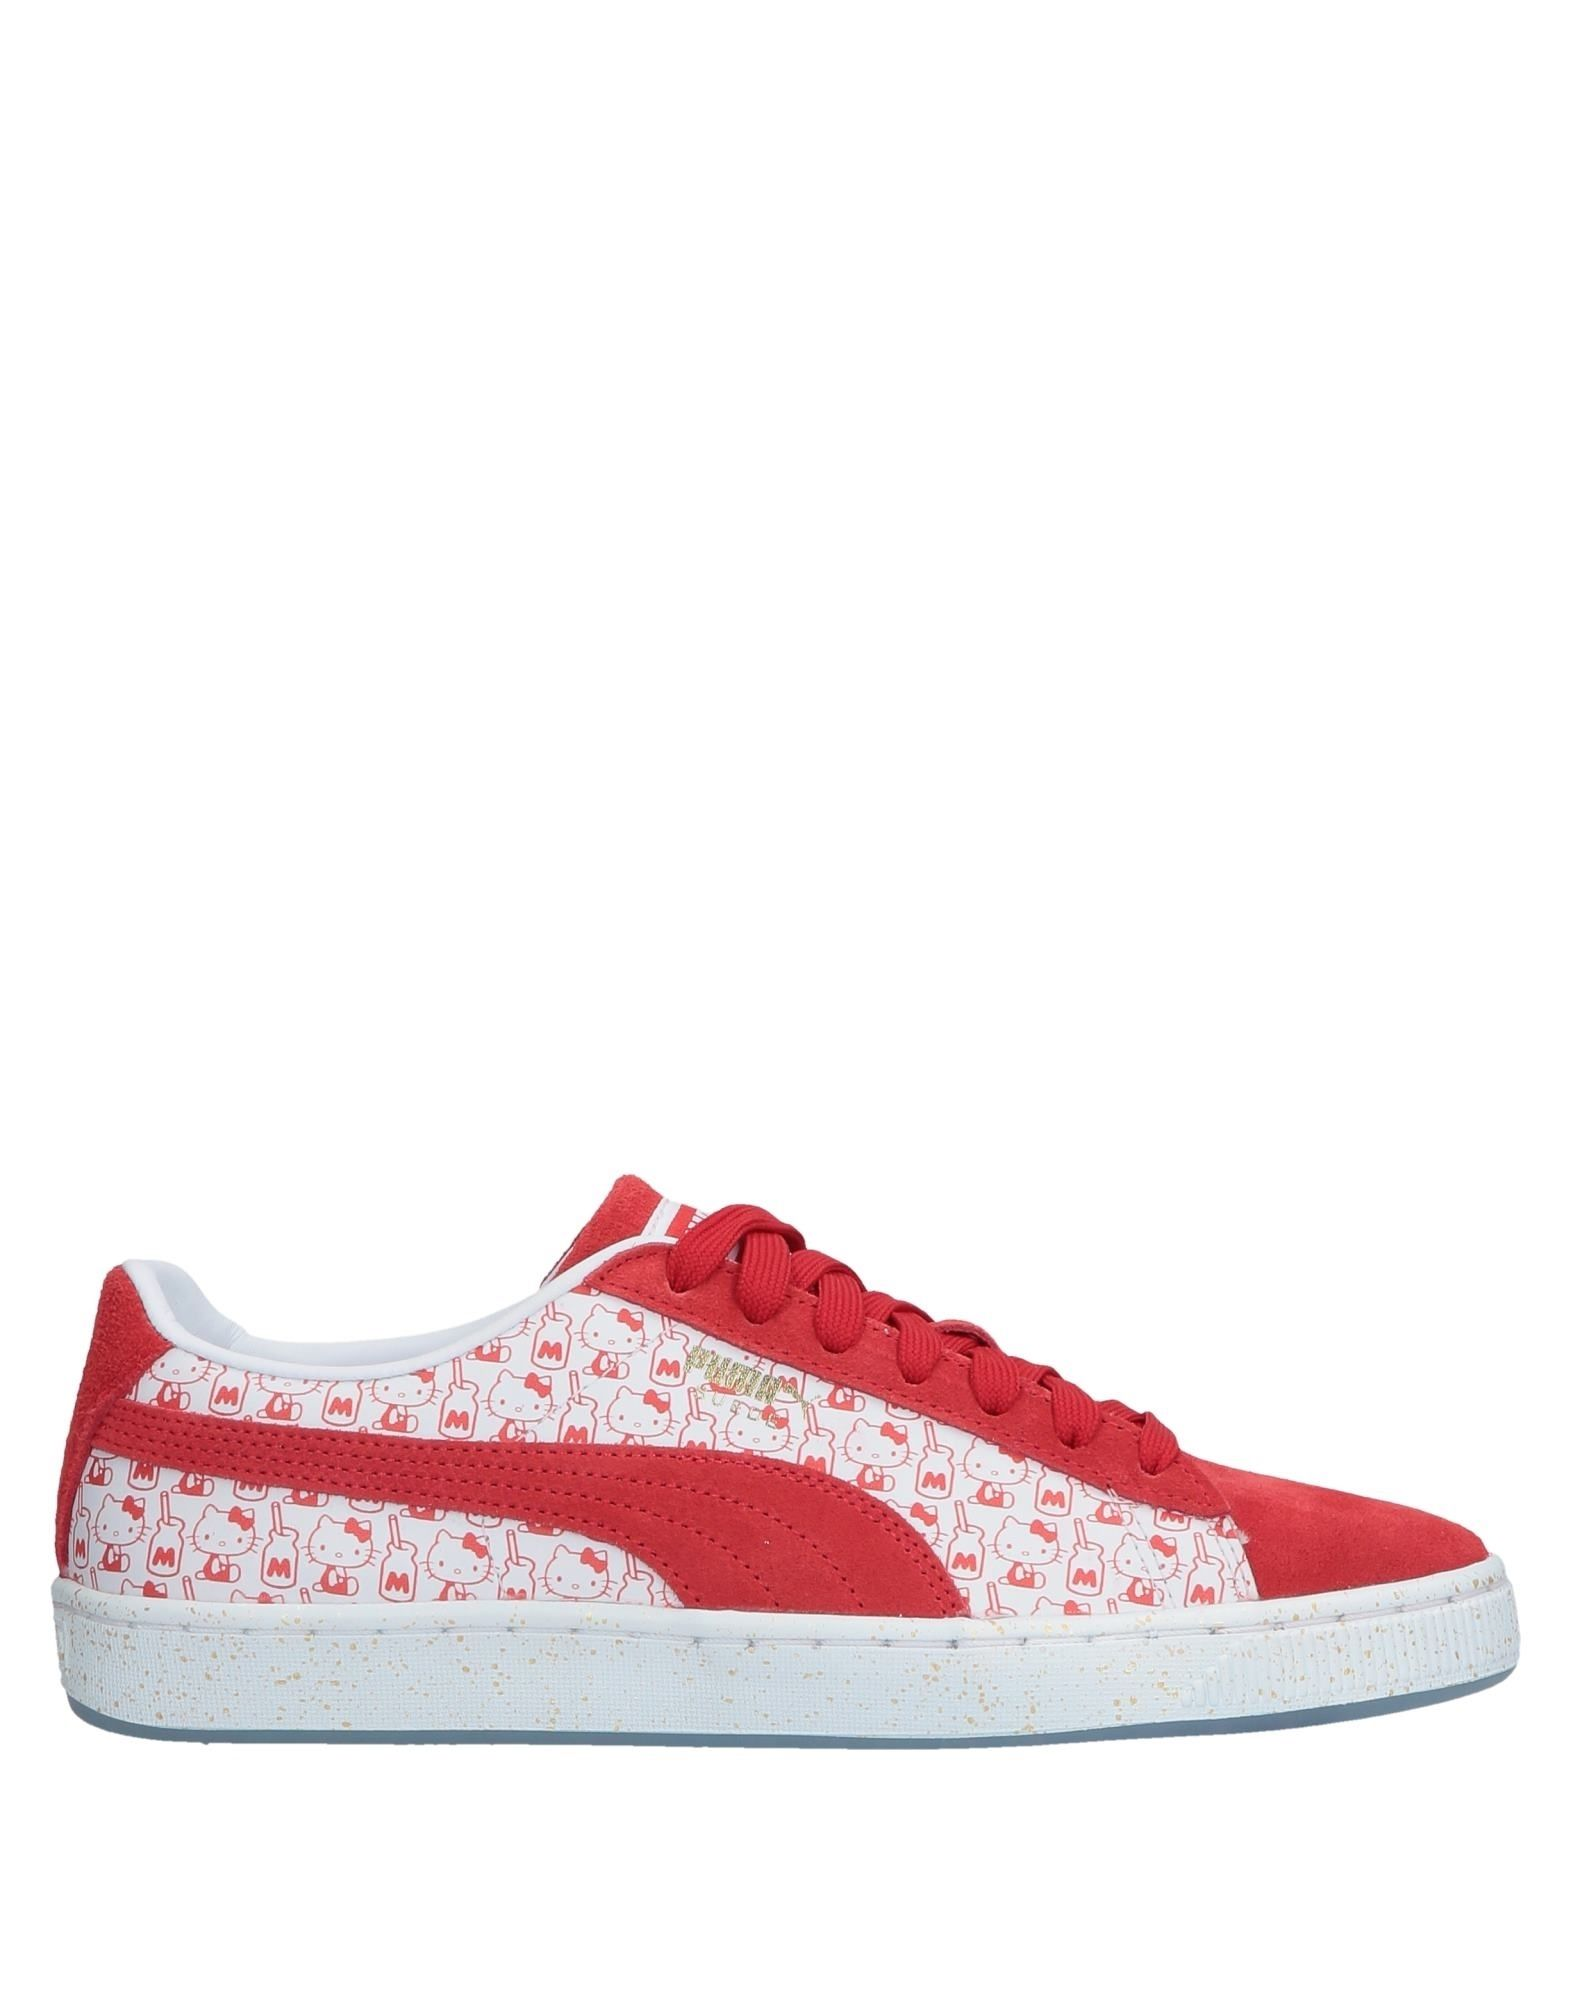 Puma X Hello Kitty Sneakers - Women Puma online X Hello Kitty Sneakers online Puma on  Australia - 11559625PA ec8a48